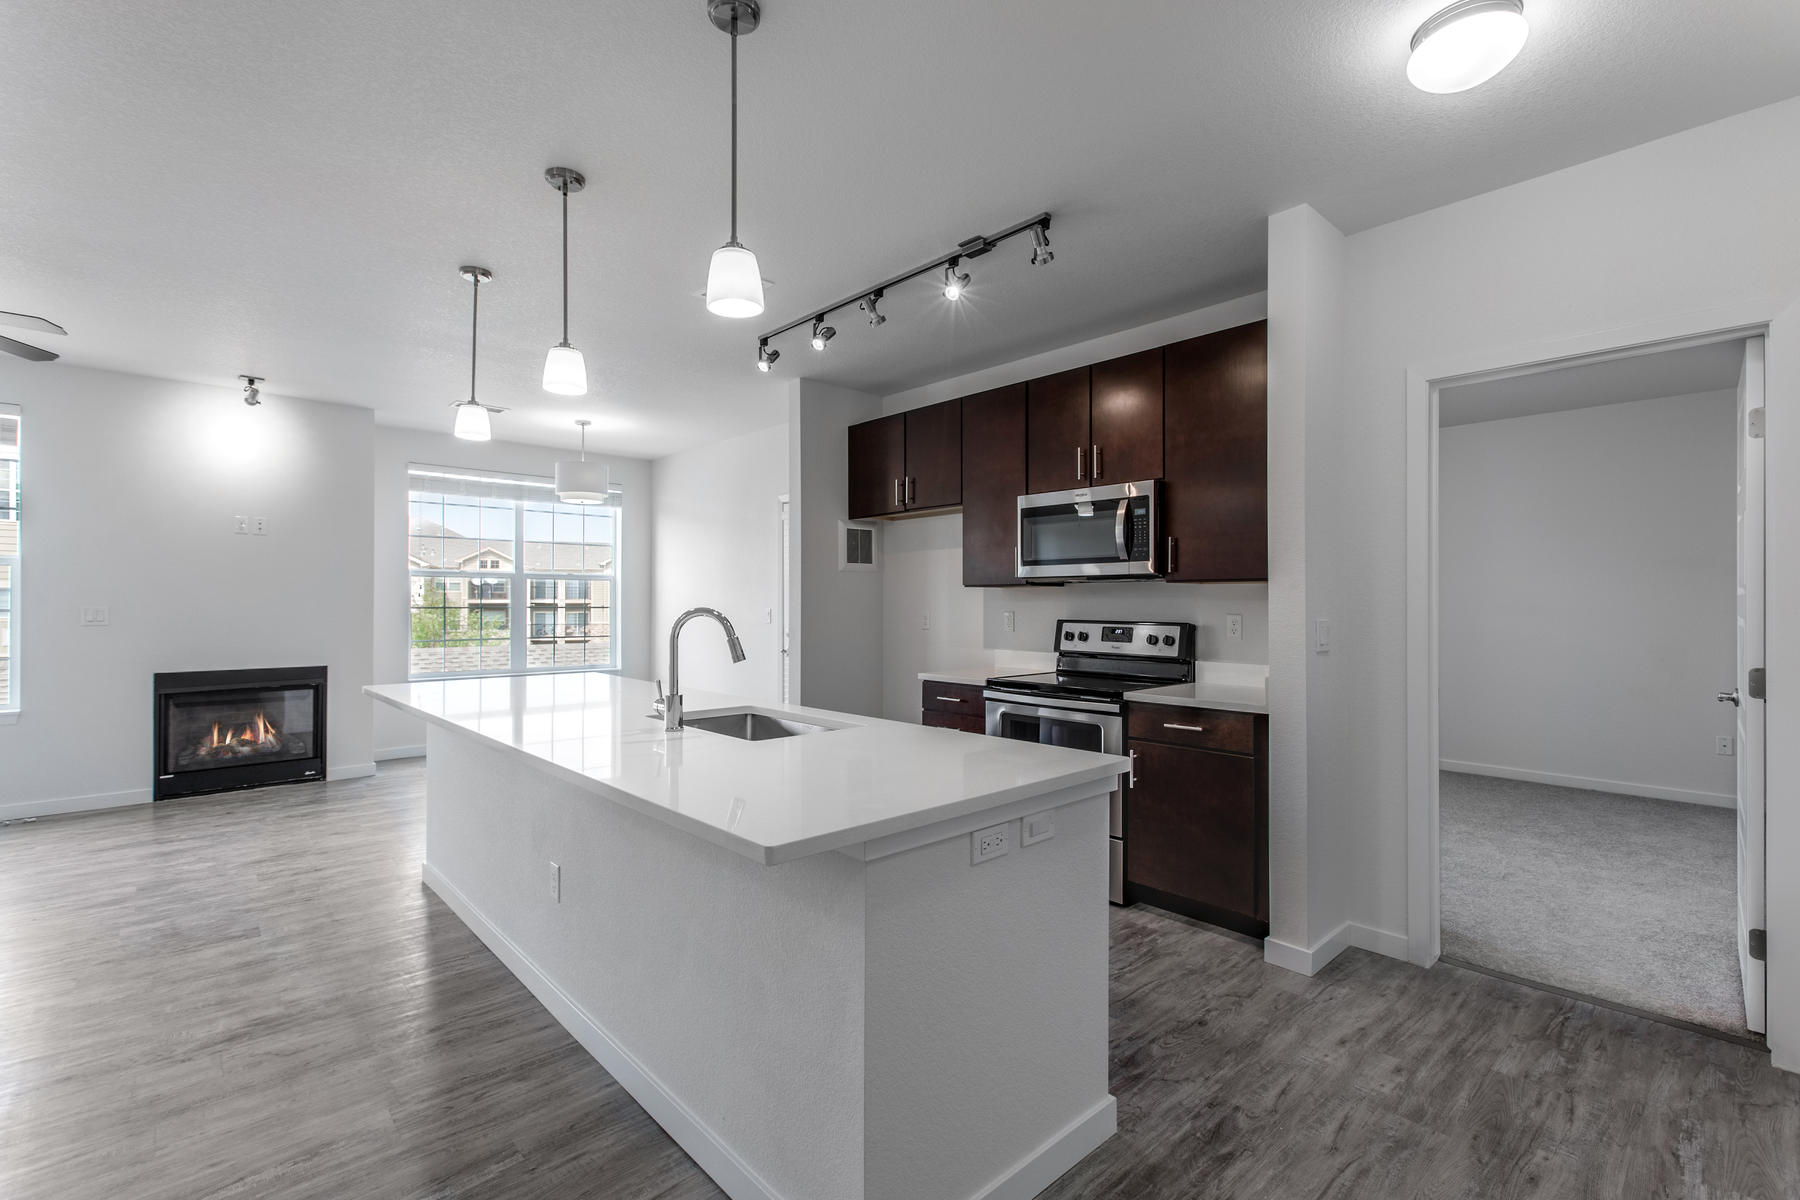 Property por un Venta en New construction Condos in an established community in Parker. 17353 Wilde Ln #208 D, Bldg 6 Parker, Colorado 80134 Estados Unidos